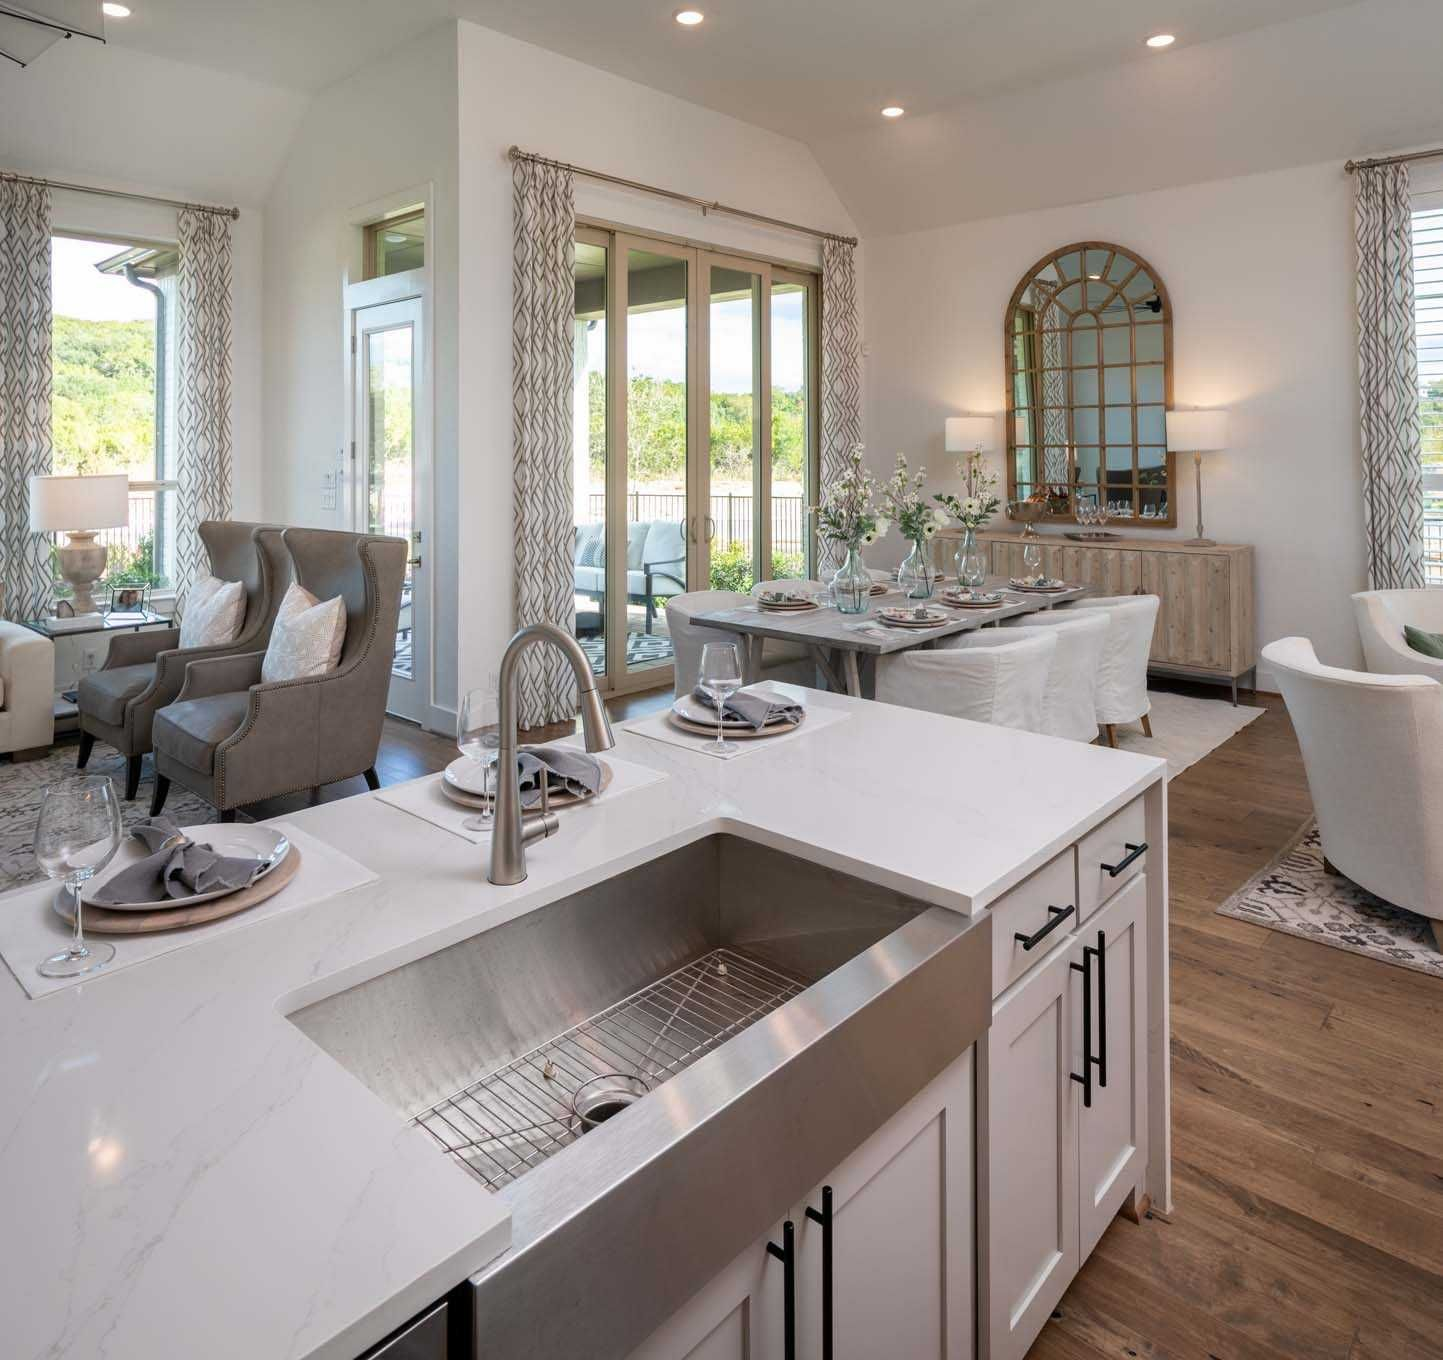 Kitchen In Highland Homes 216 Plan At 17906 Cantera Court San